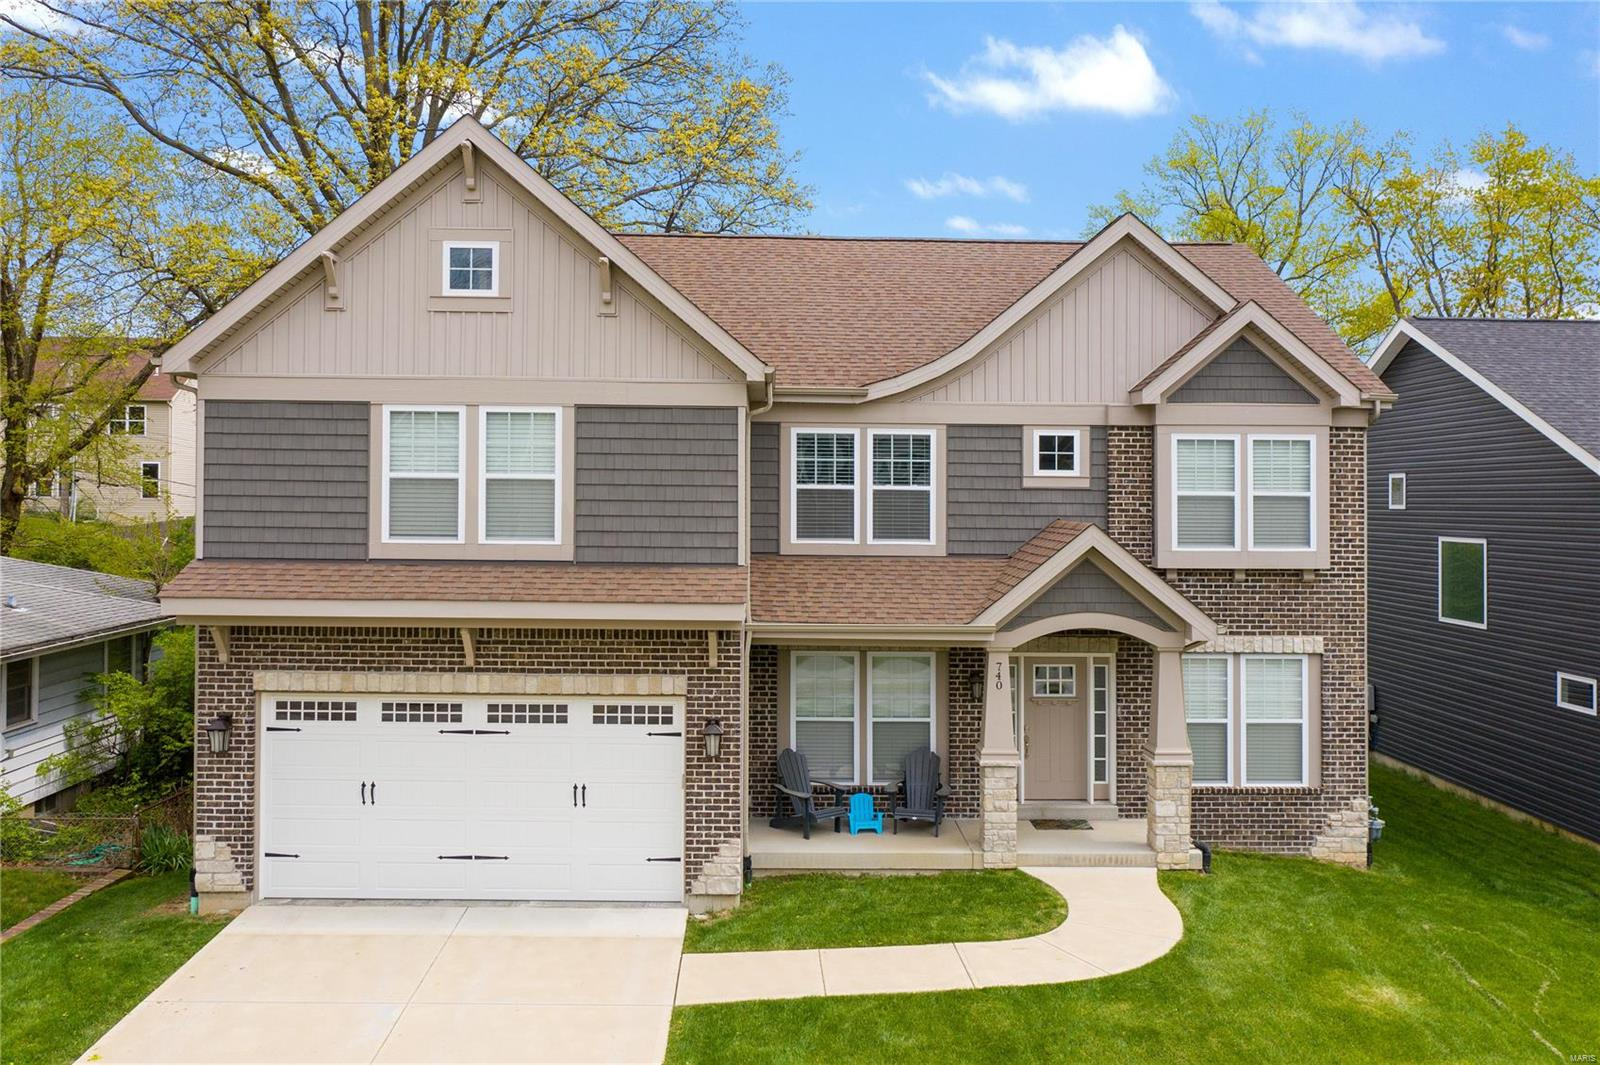 740 Cherry Tree Property Photo - Olivette, MO real estate listing